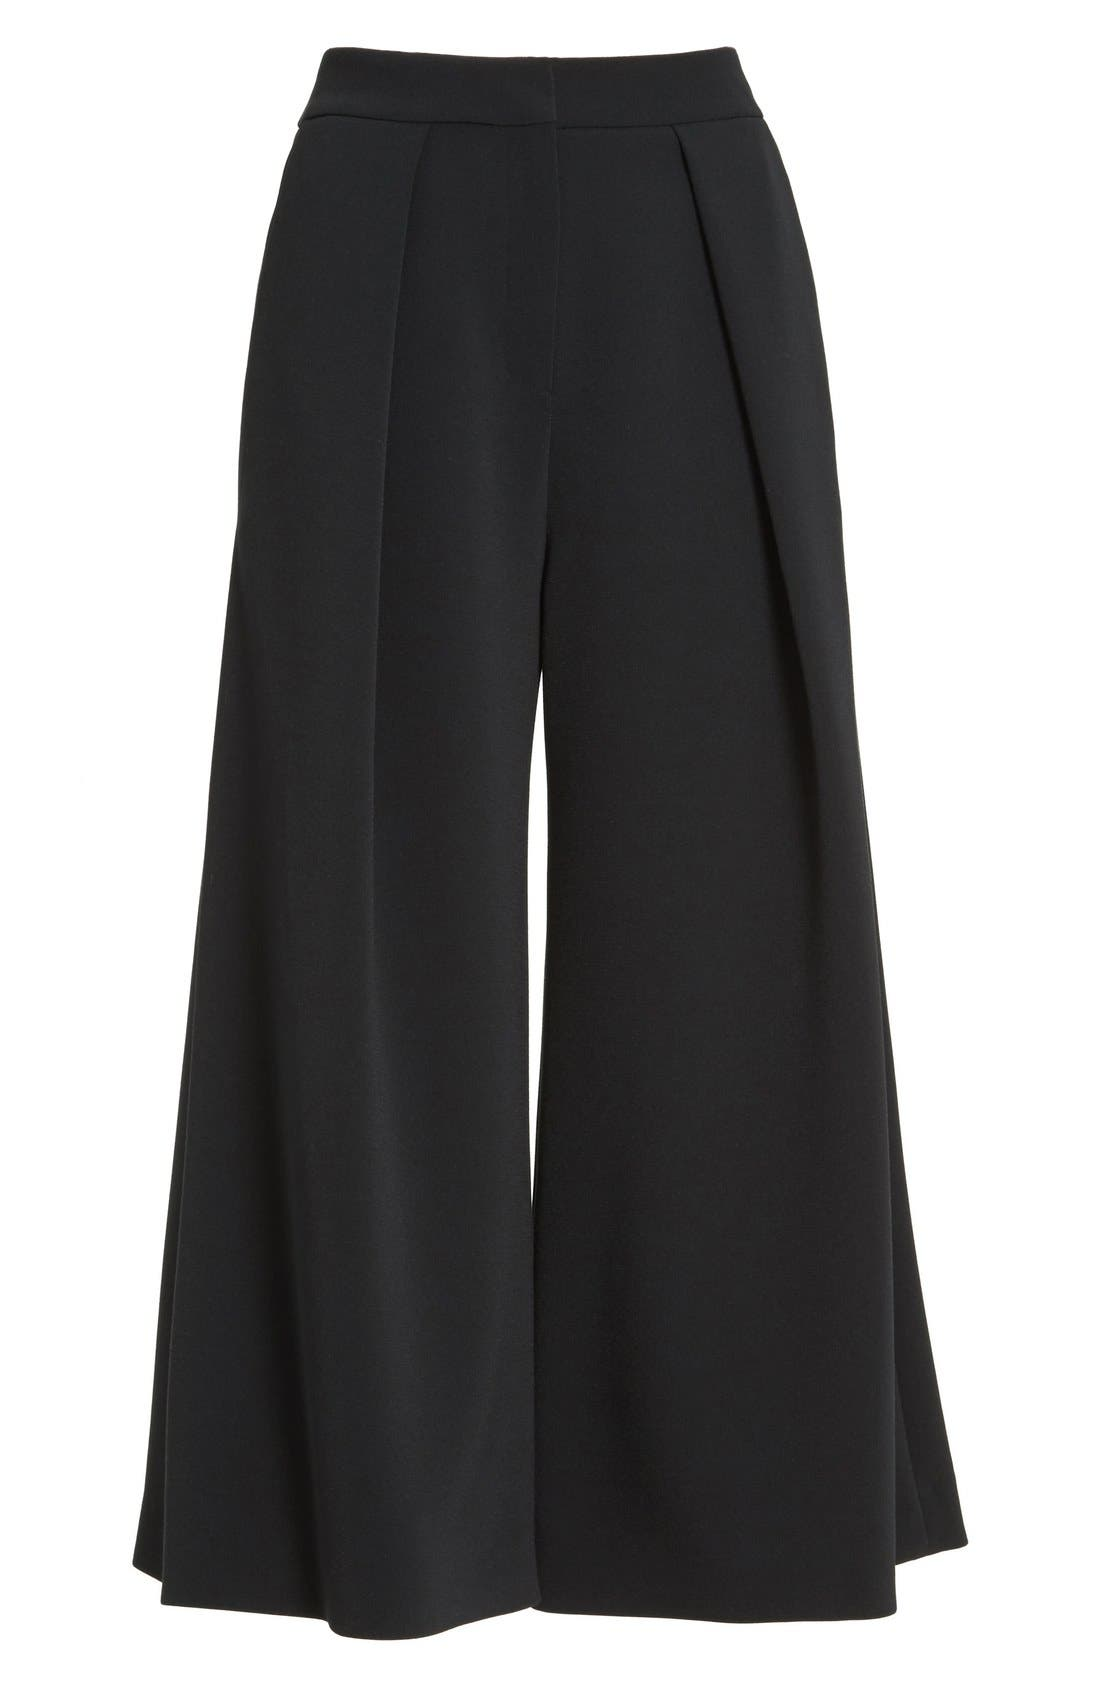 Devon Culottes,                             Alternate thumbnail 4, color,                             Black